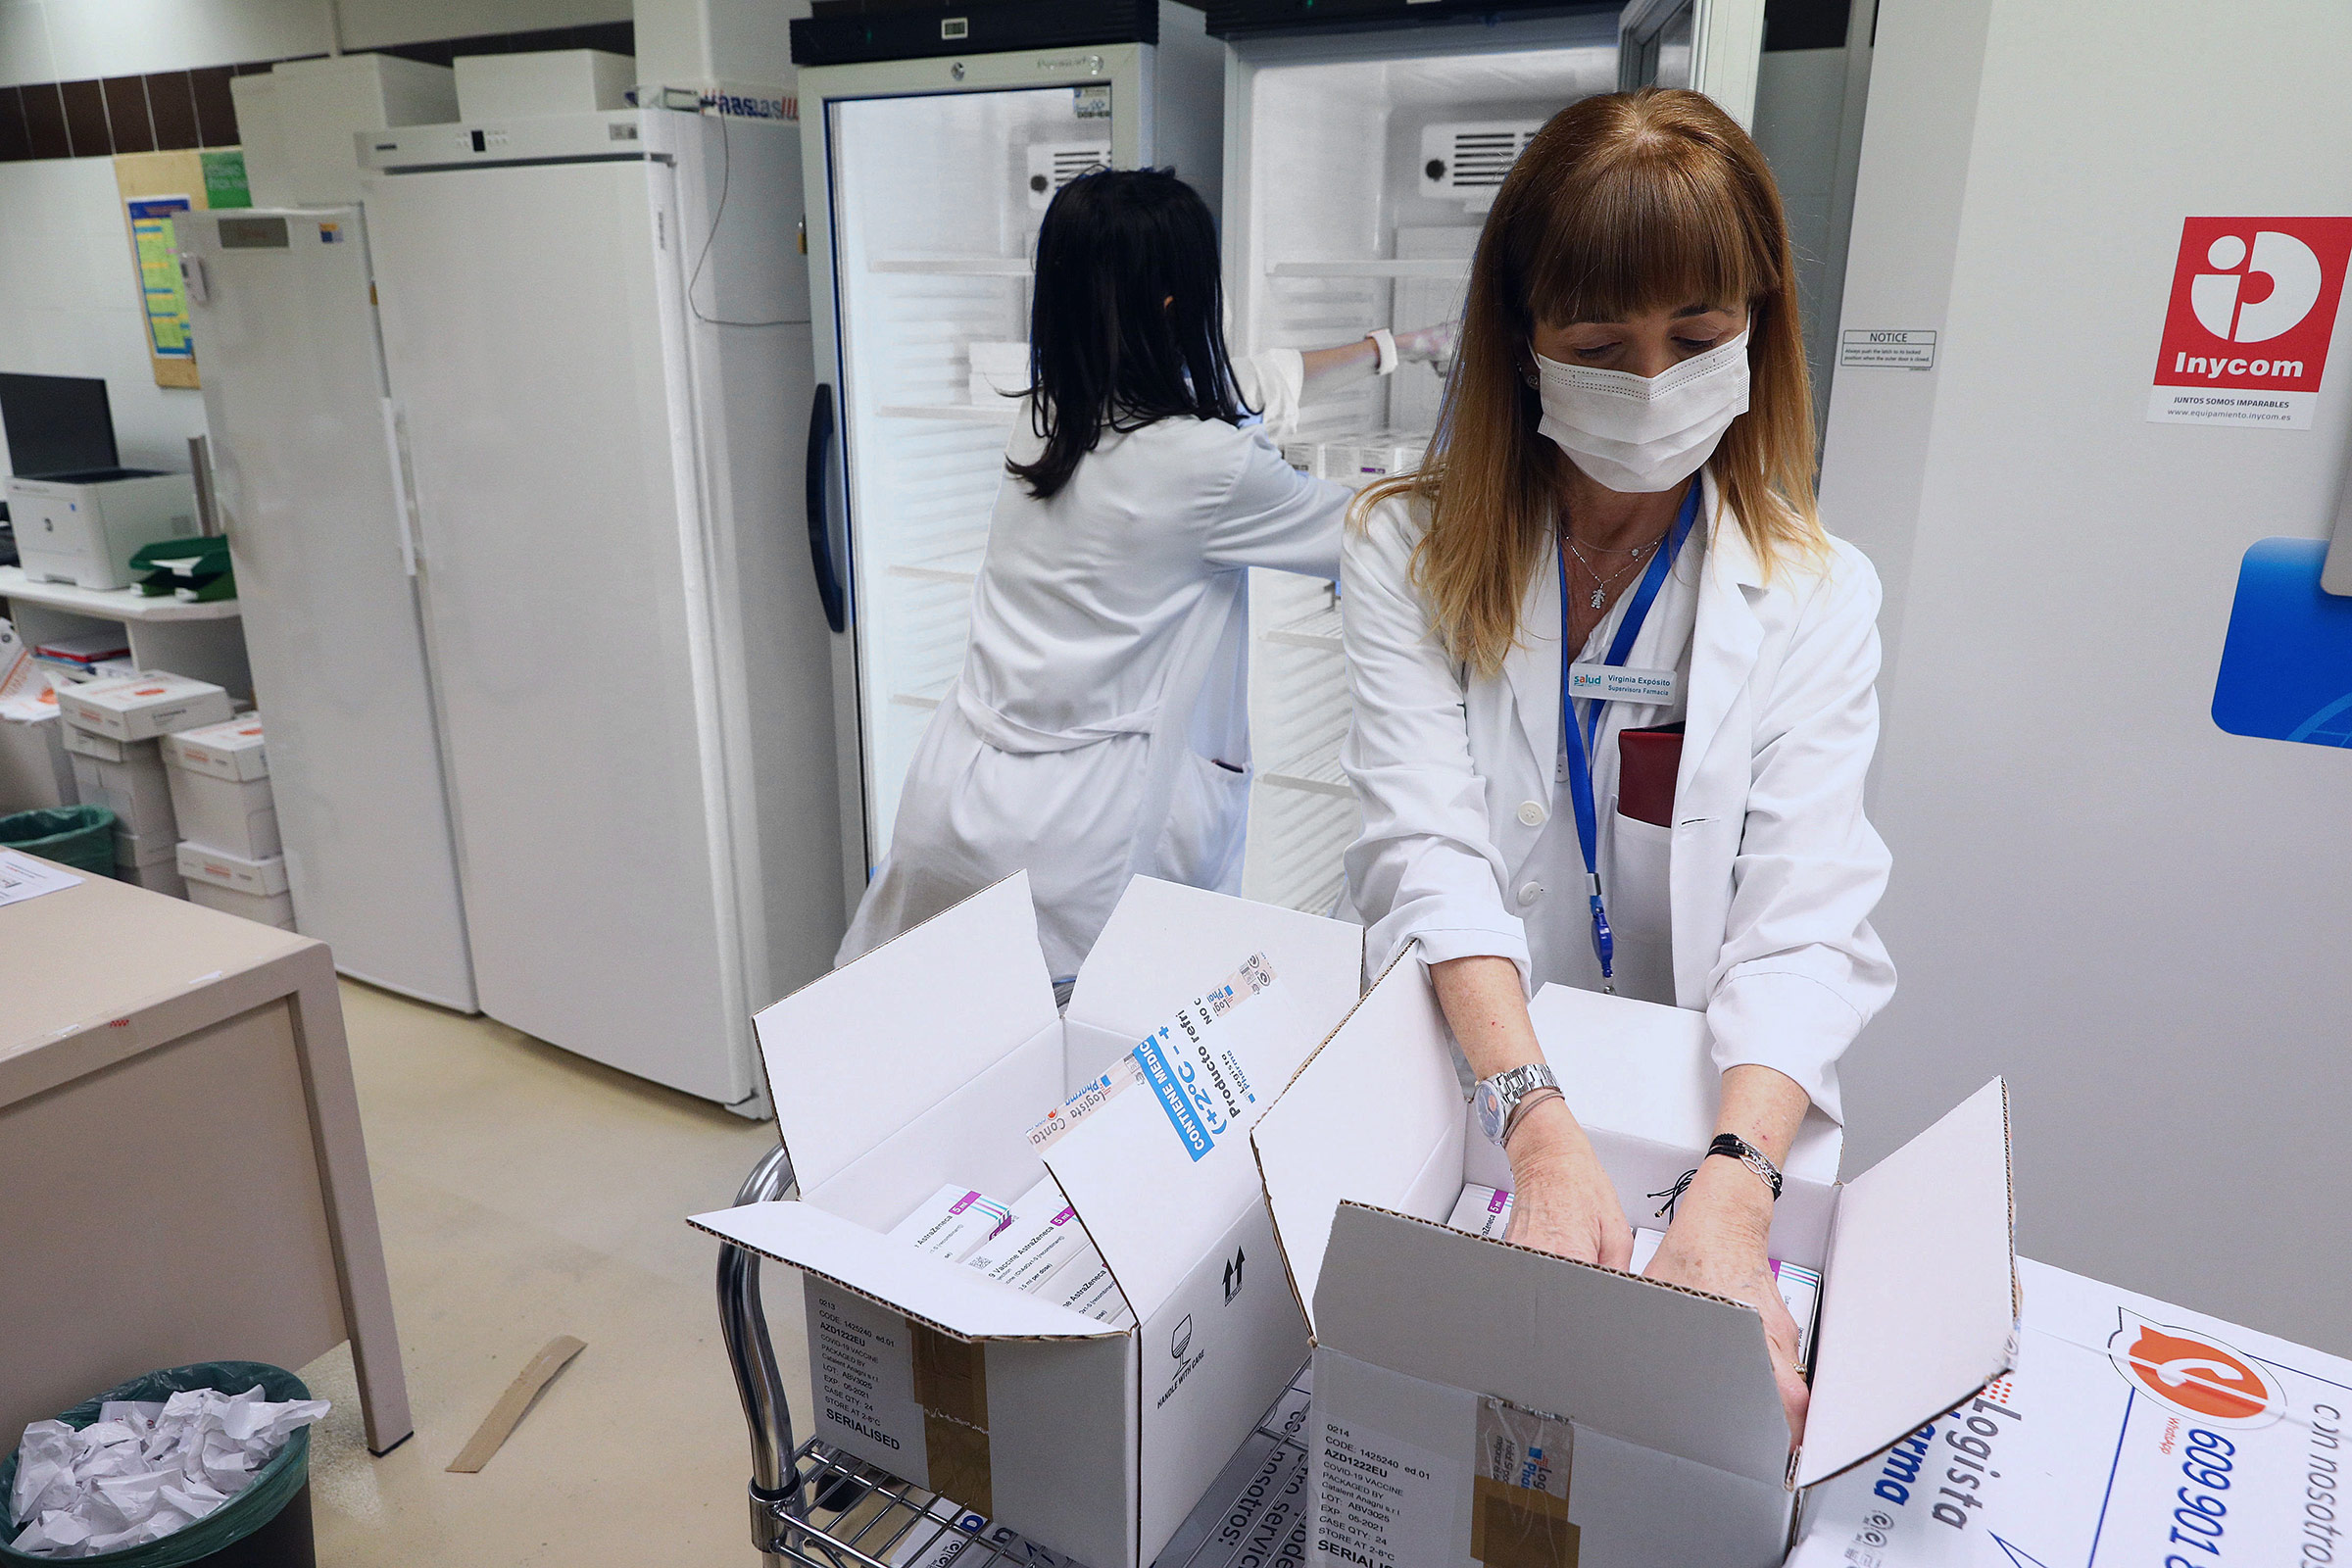 Health workers receive a delivery of the Oxford-AstraZeneca vaccine at University Clinico Hospital in Zaragoza, Spain, on February 8.